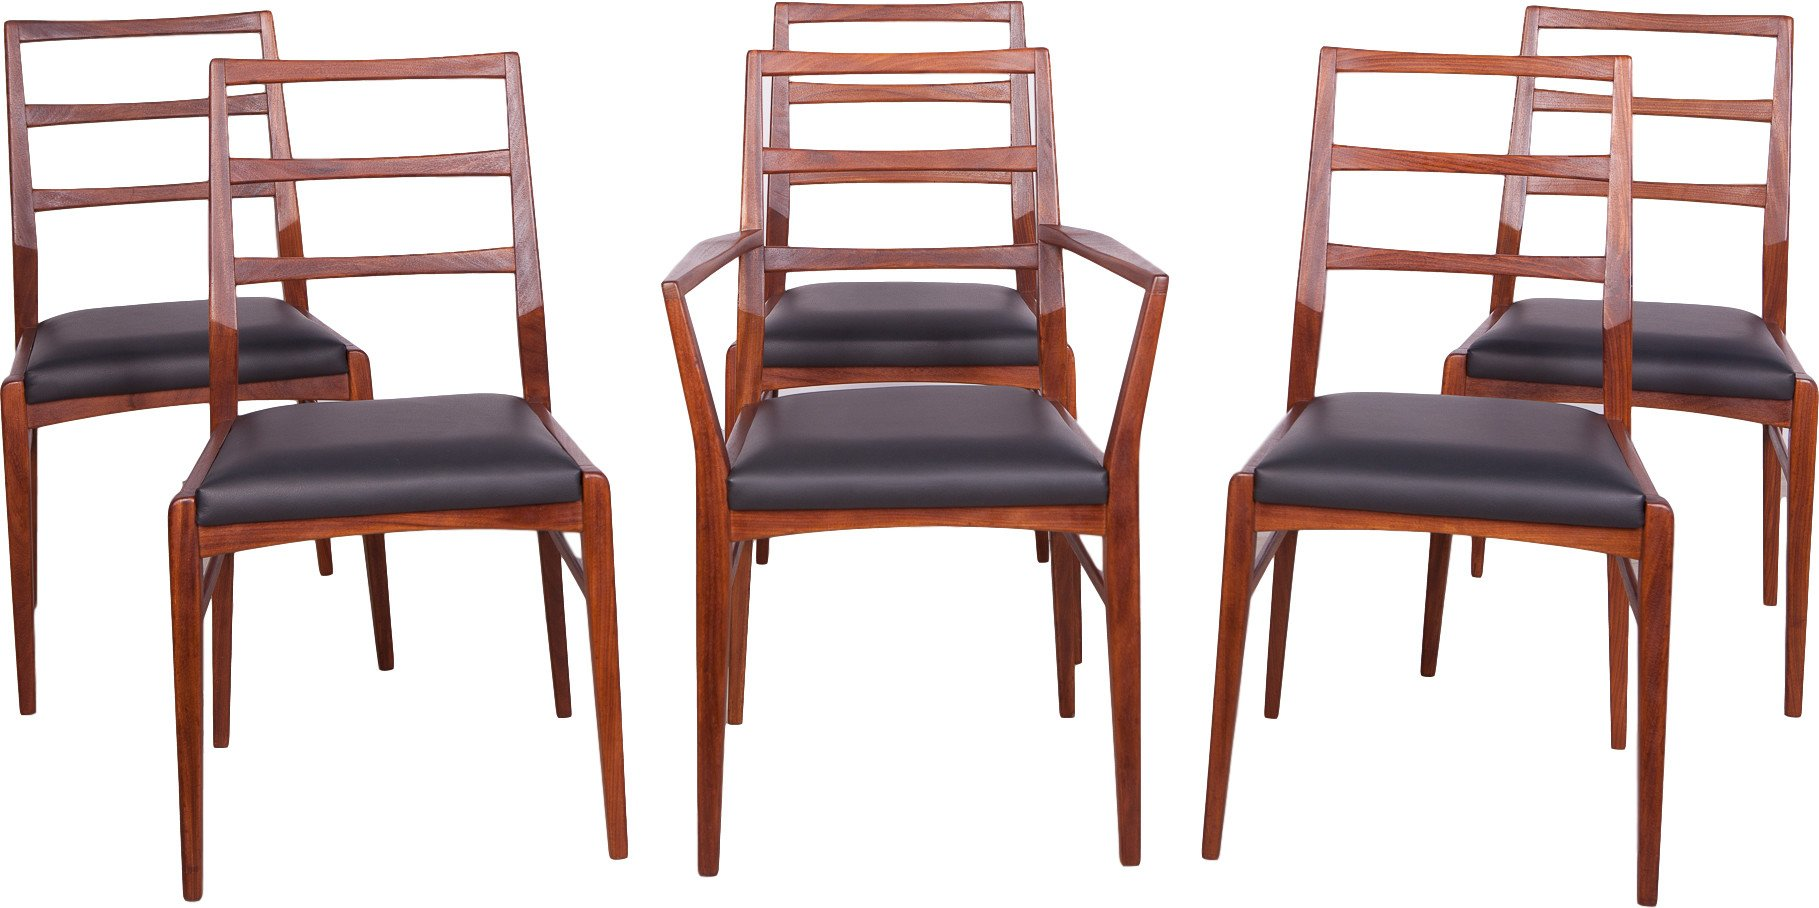 Set of Six Chairs, United Kingdom, 1960s